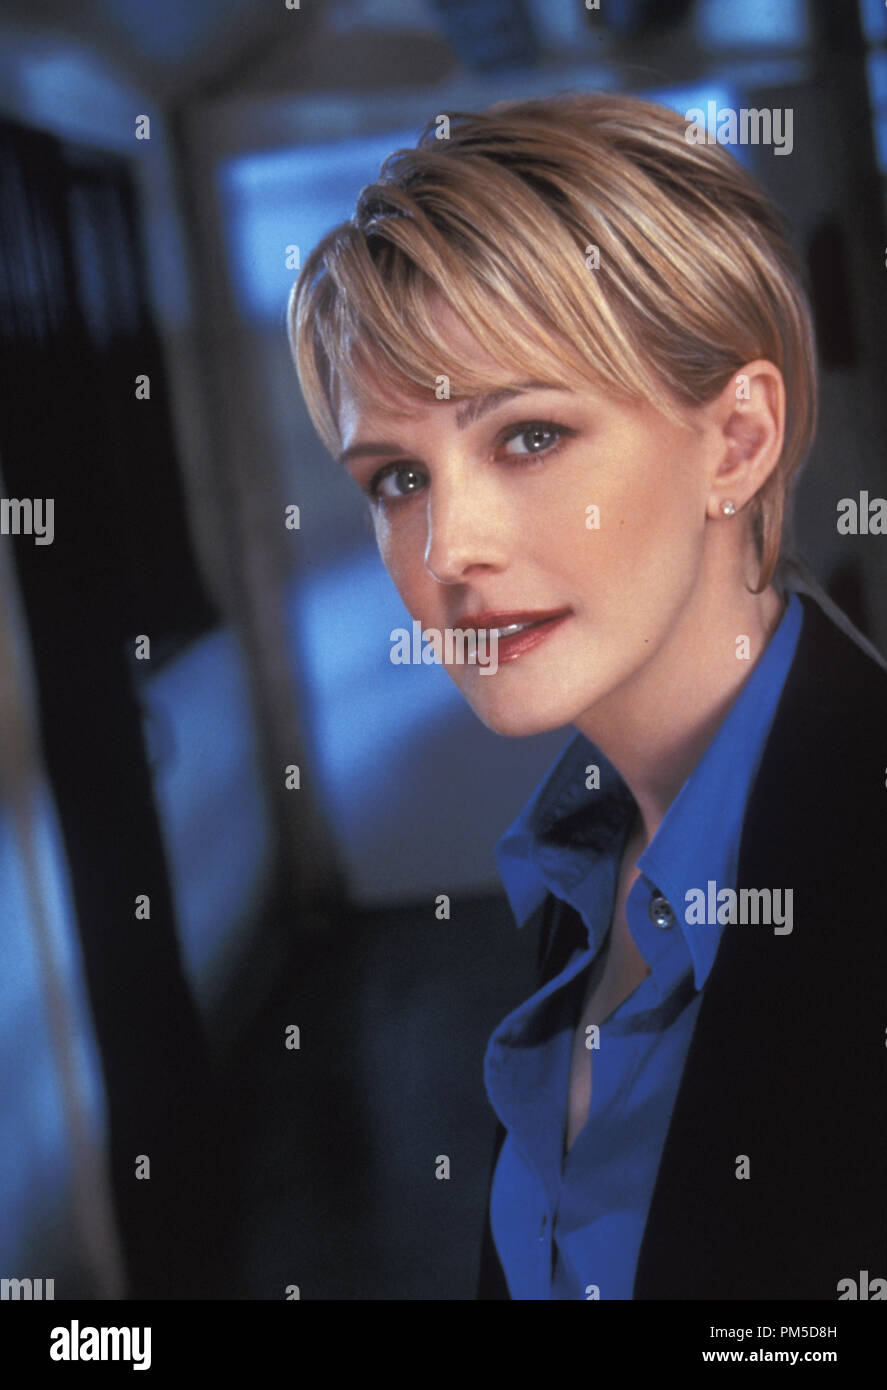 Film Still / Publicity Still from 'Cold Case' Kathryn Morris 2005  File Reference # 30736250THA  For Editorial Use Only -  All Rights Reserved - Stock Image